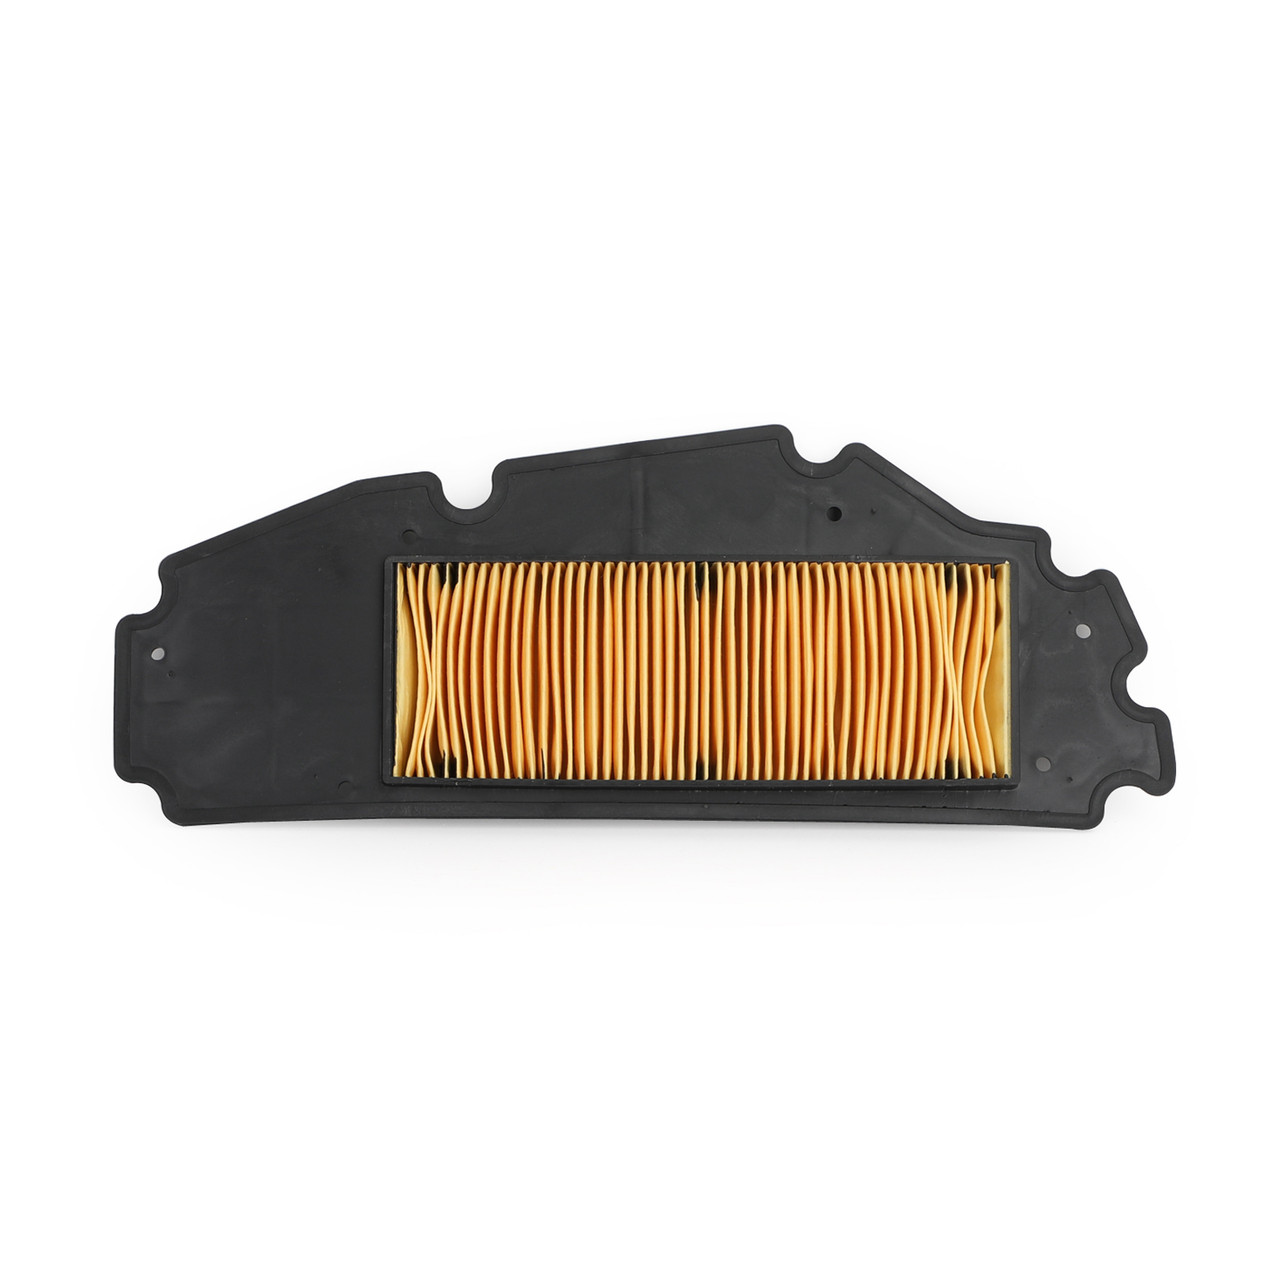 Air Filter Cleaner Element Replacement For SYM GTS125 06-08 GTS200 09-11 GTS250 06-11 GTS300 09-13 RV250 05-13 Joymax125  06-08 Joymax250 06-13 CRUISYM300 17-18 Yellow